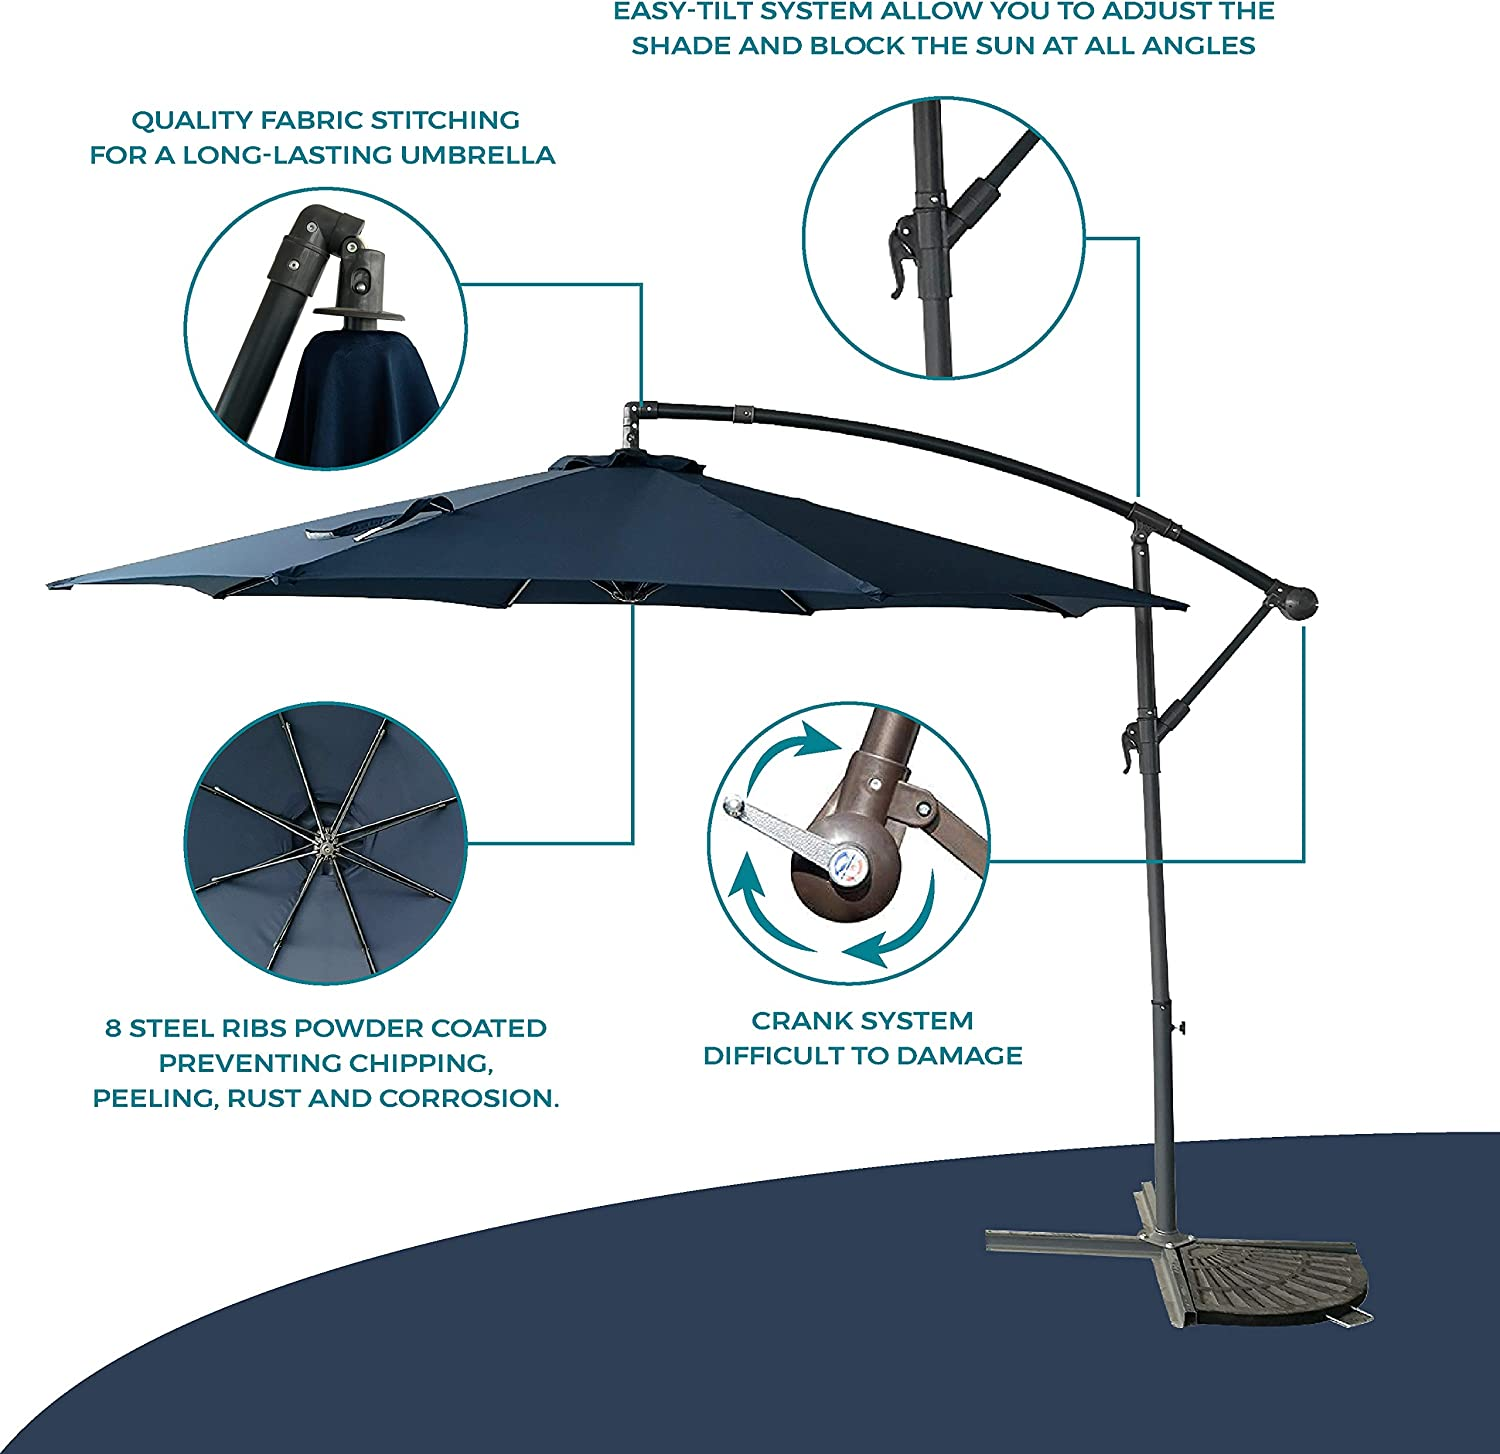 Project One 10ft Patio Offset Cantilever Umbrella Market Umbrellas Outdoor Umbrella with Crank Cross Base for Garden, Deck,Backyard and Pool Navy